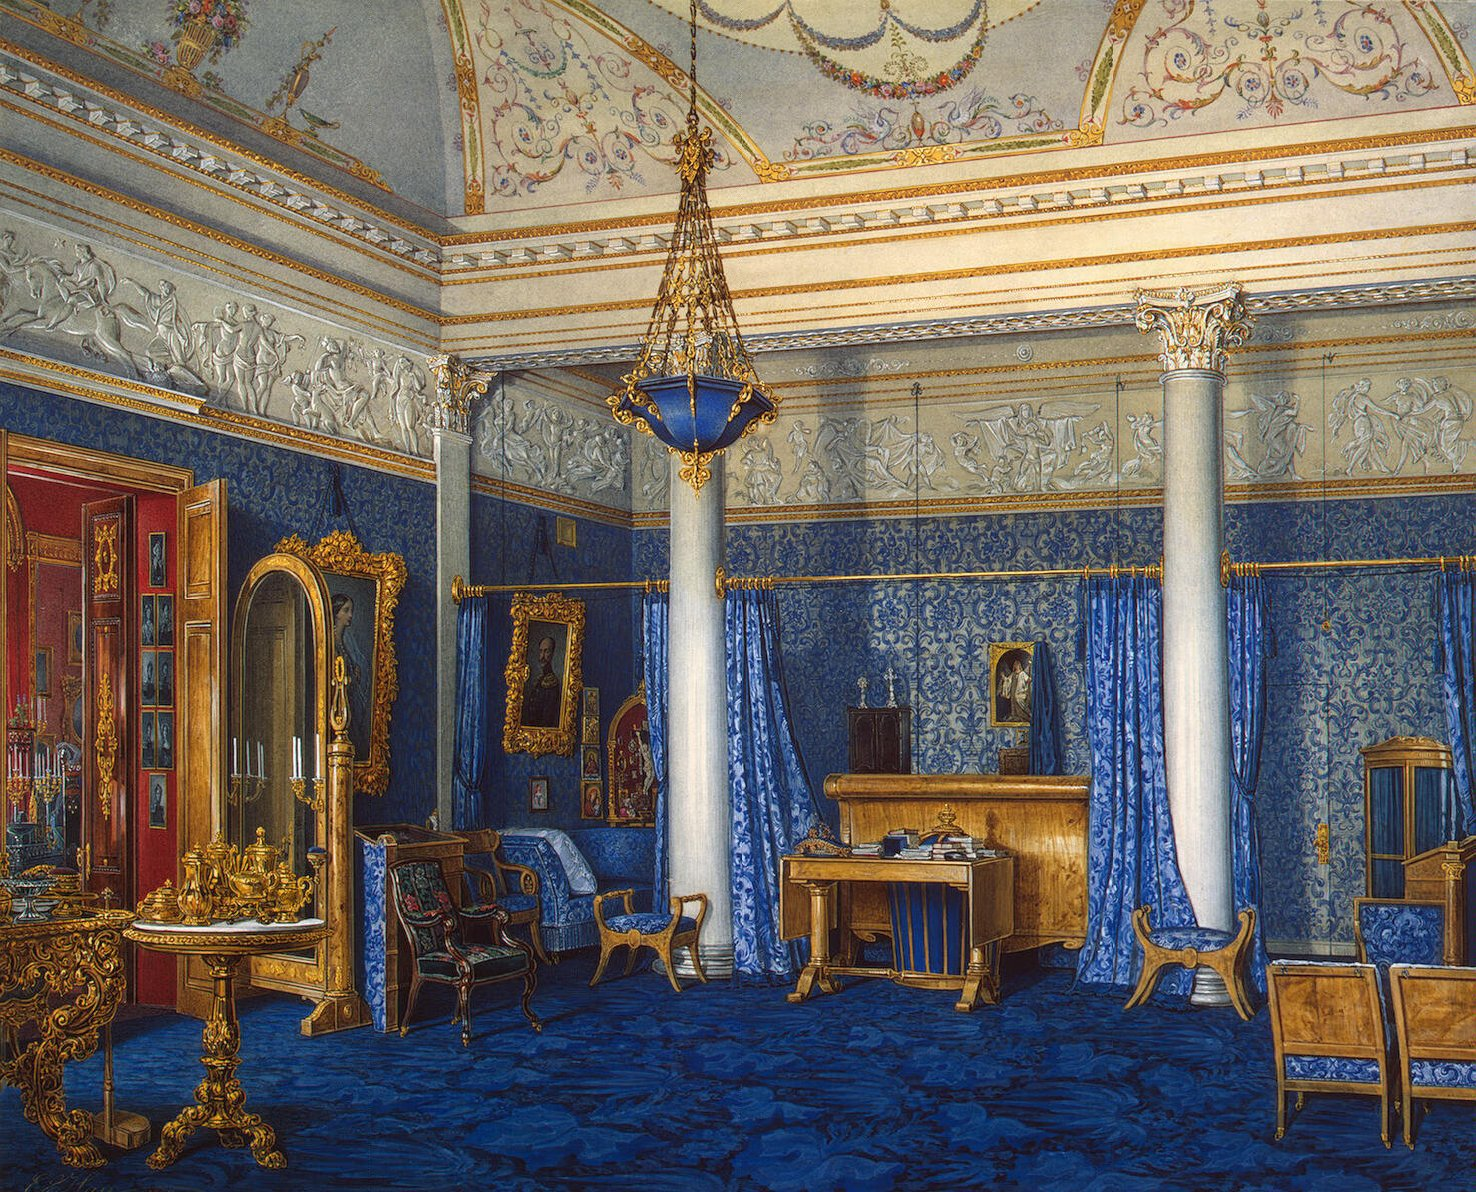 File:Hau. Interiors of the Winter Palace. The Bedchamber ...